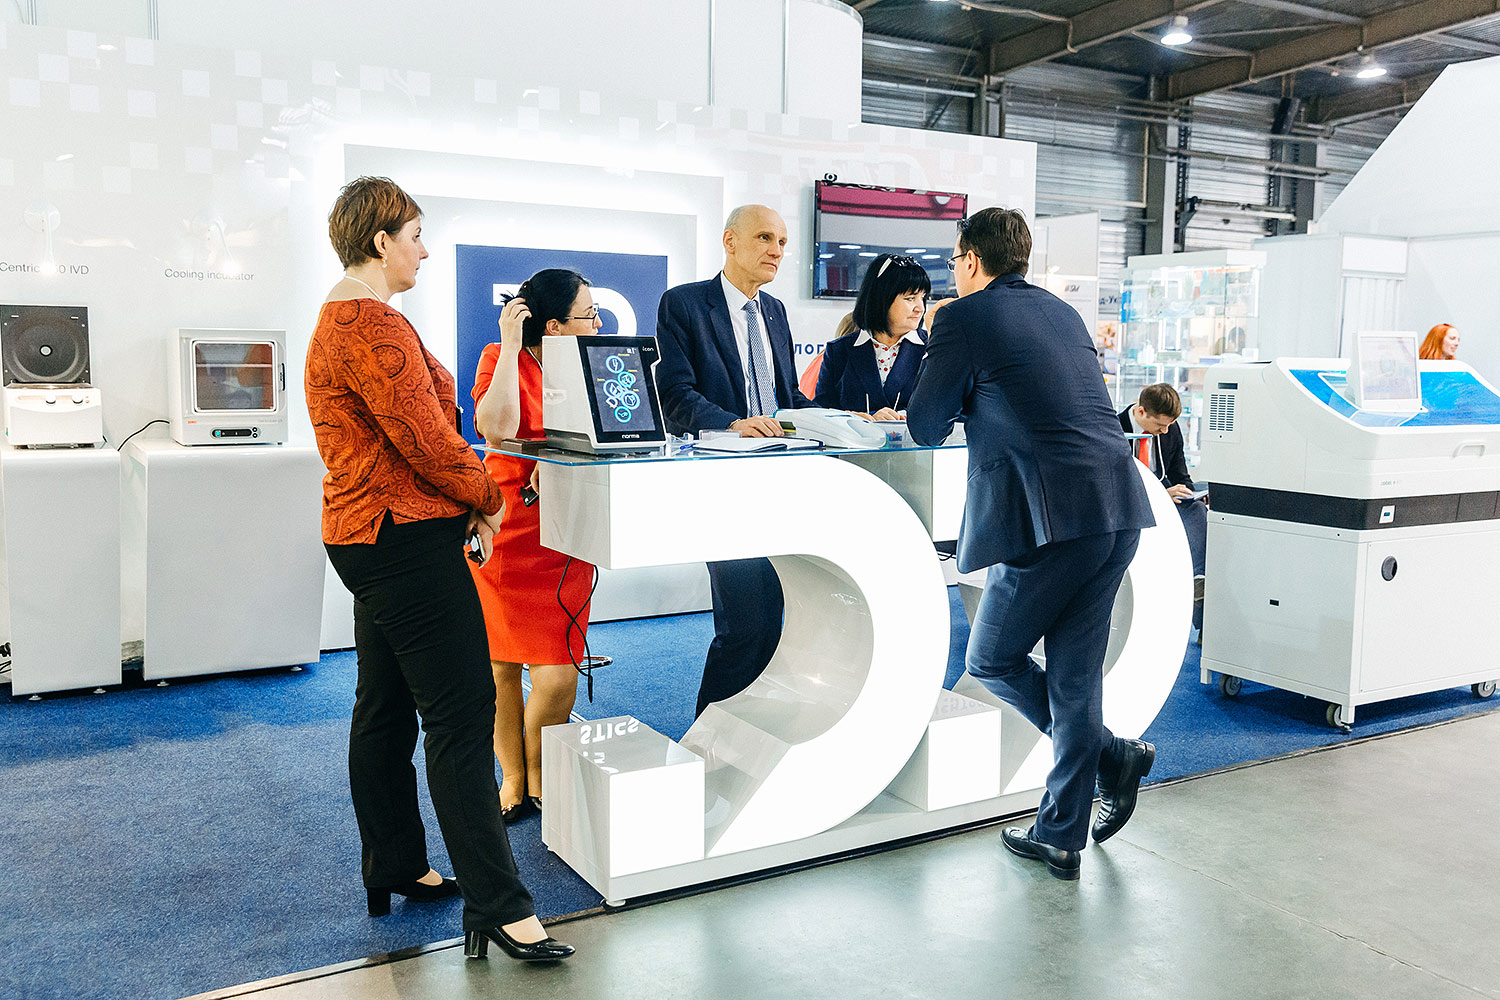 Glowing 3D logo. The reception desk with backlight at the Dialogue Diagnostics exhibition stand. Backlit acrylic letters.